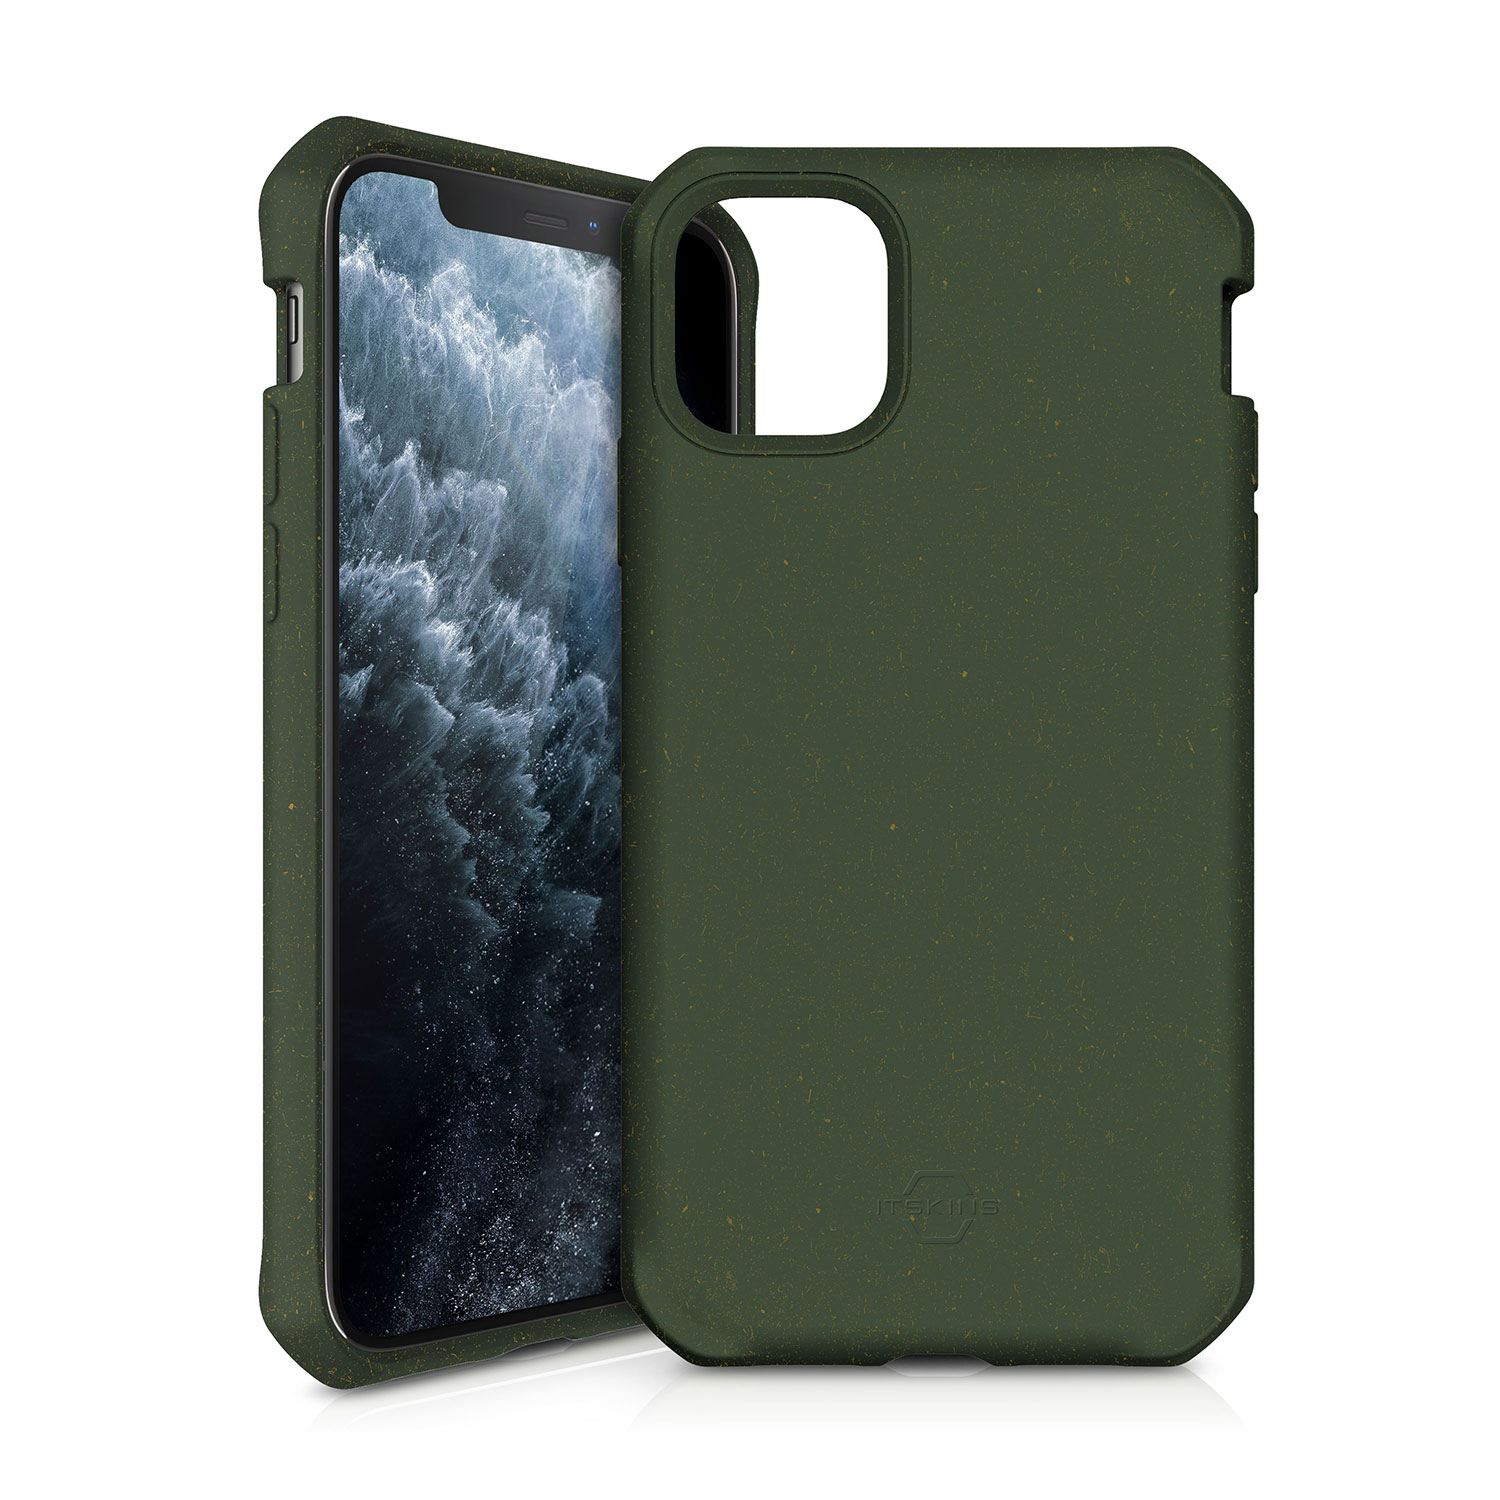 "ITSKINS FERONIABIO Cover til iPhone 11 Pro 5,8"". Kaki"